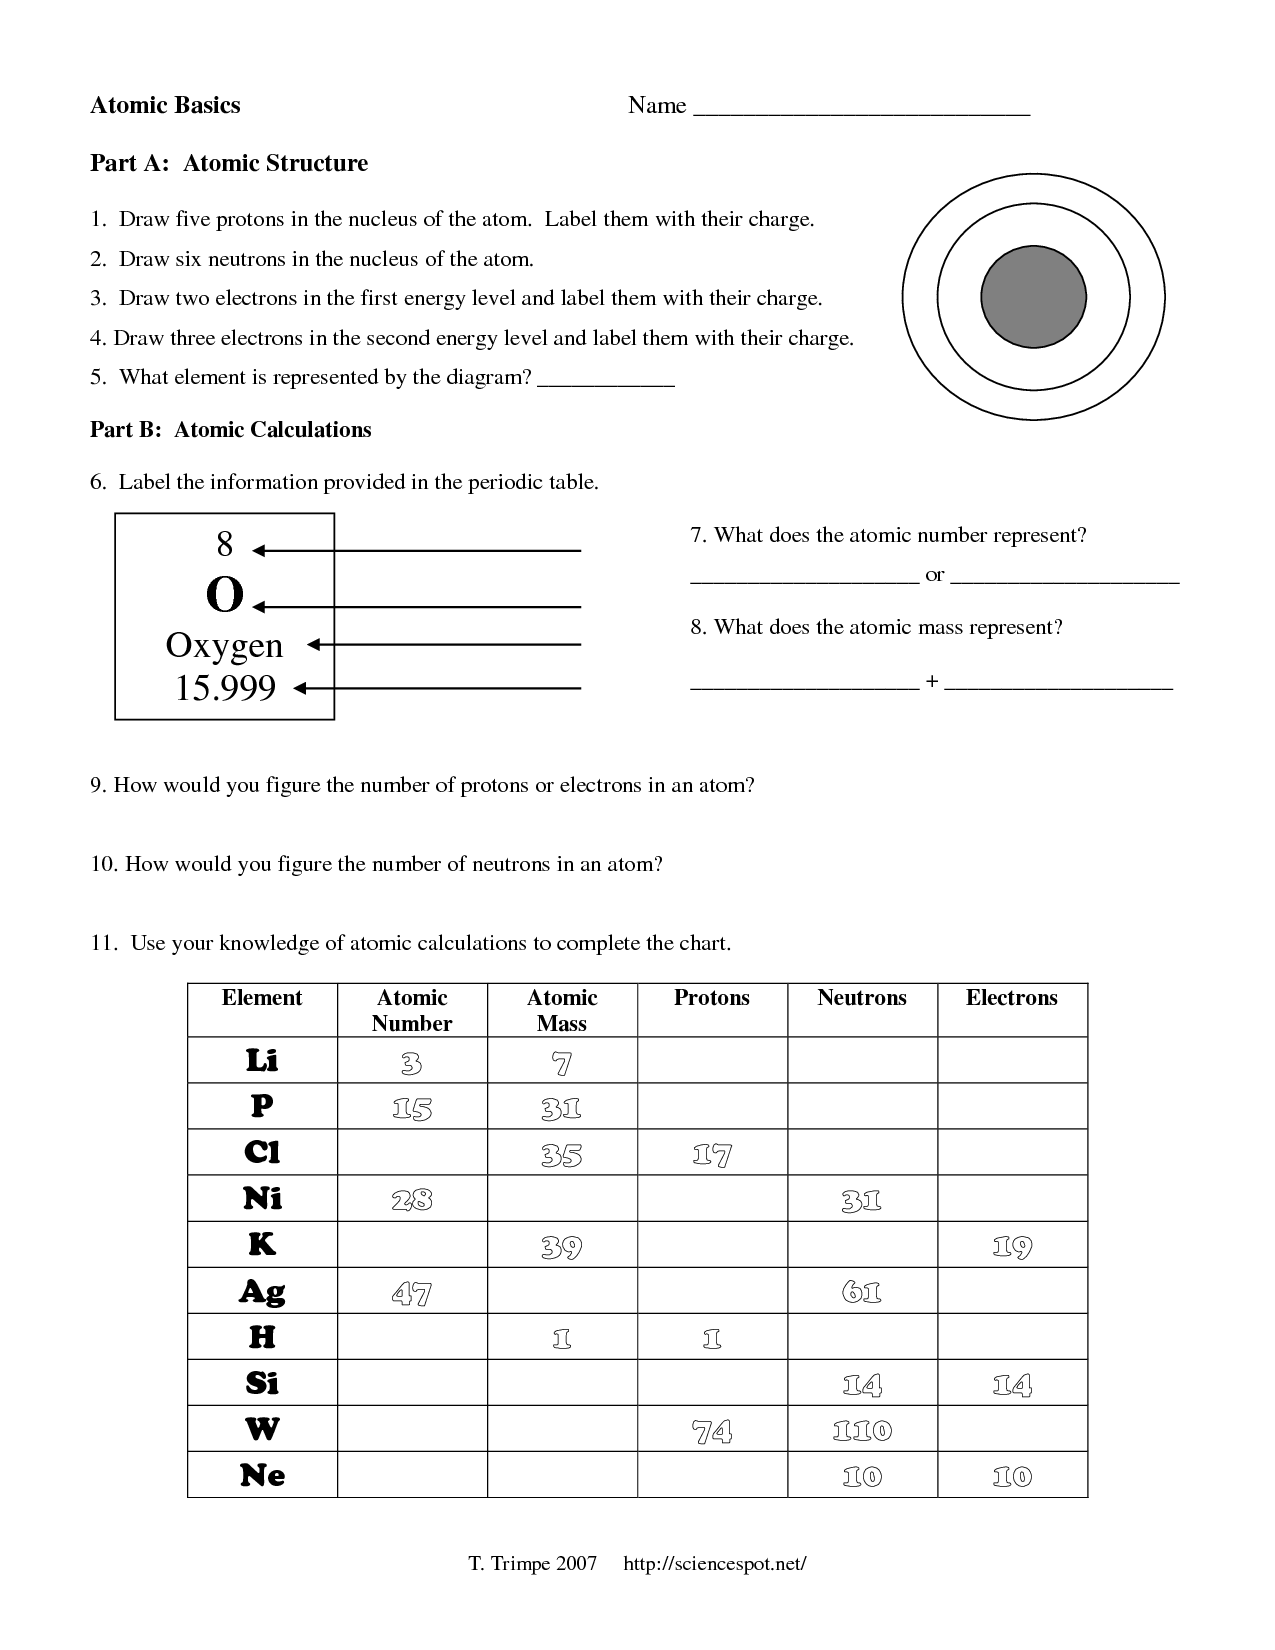 Atomic Model Timeline Worksheet